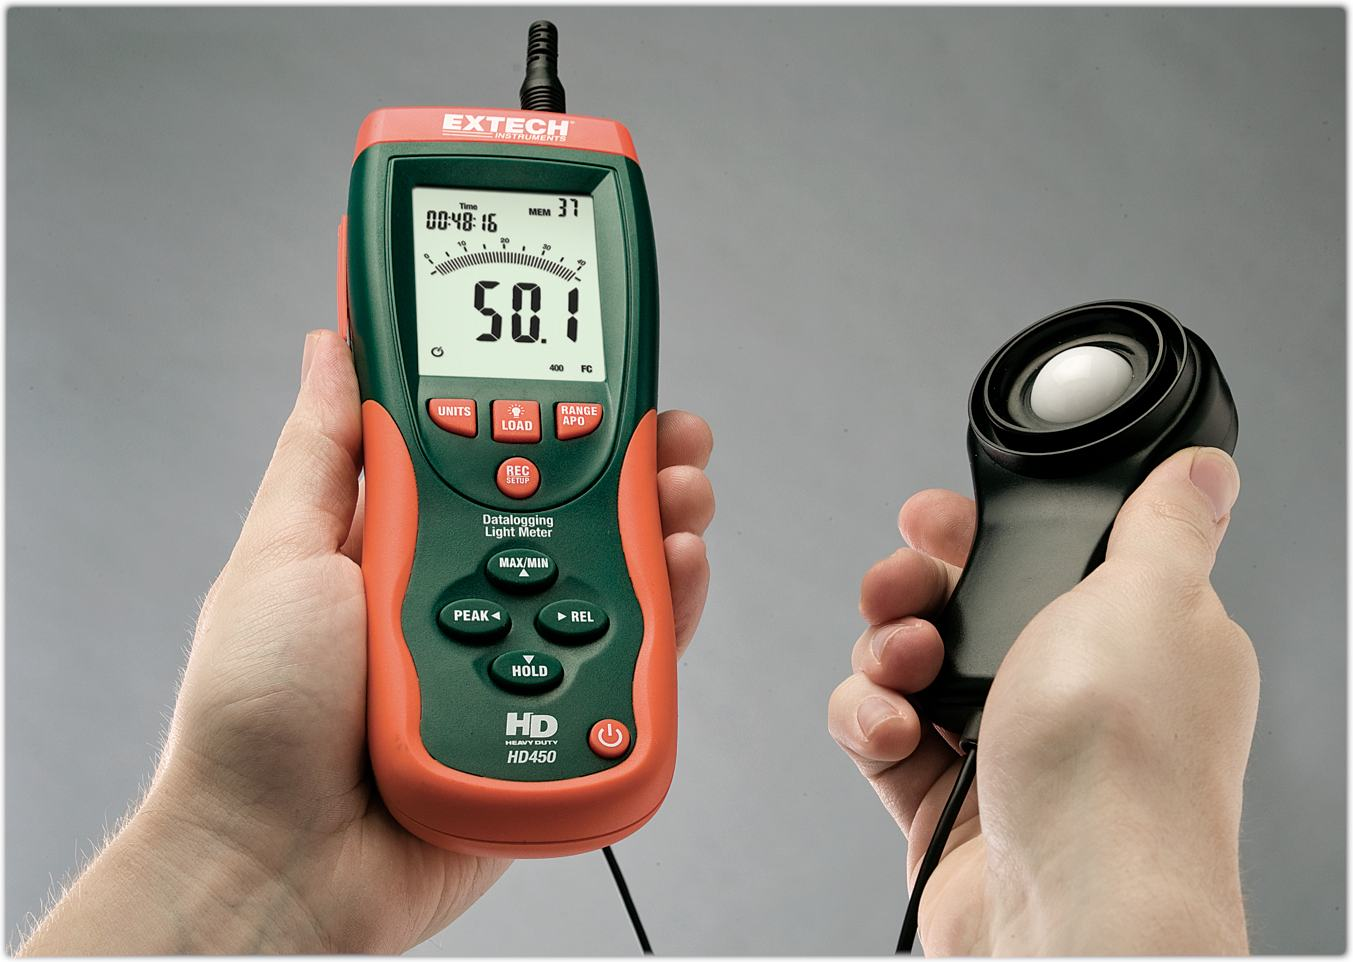 Amazon.com: Extech HD450 Datalogging Heavy Duty Light Meter: Home